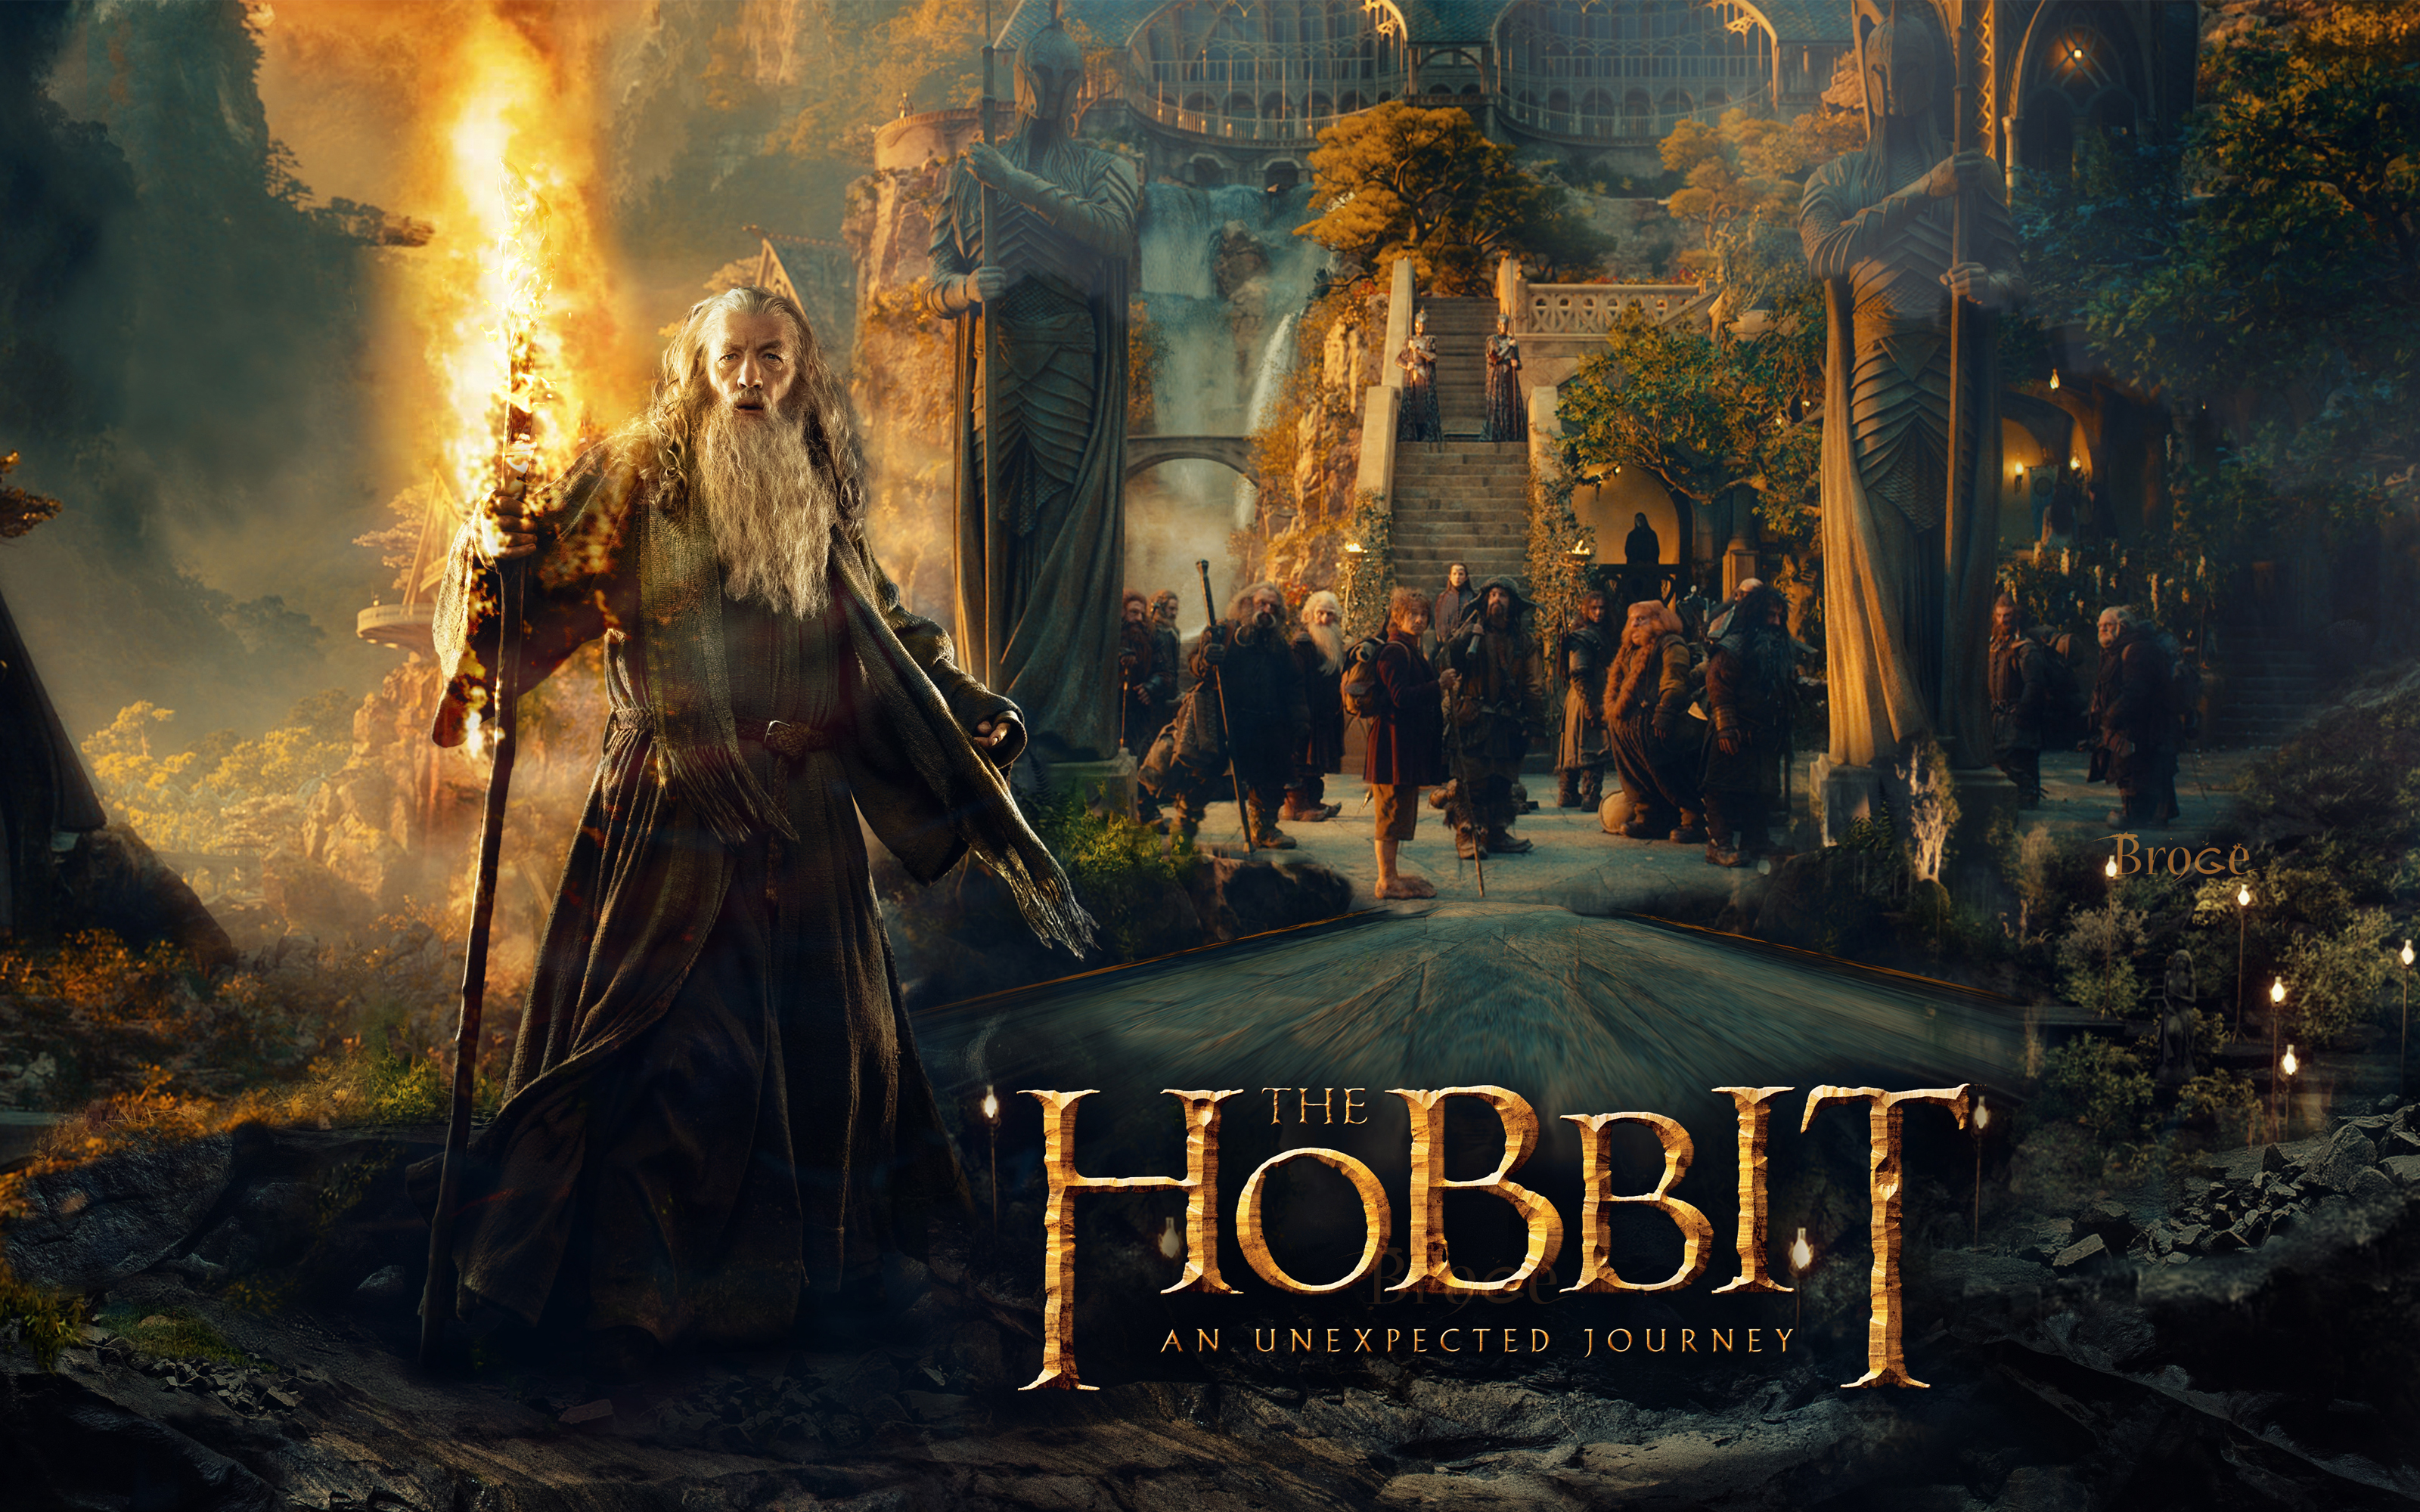 The Hobbit Wallpapers Widescreen HP11216   4USkY 3200x2000